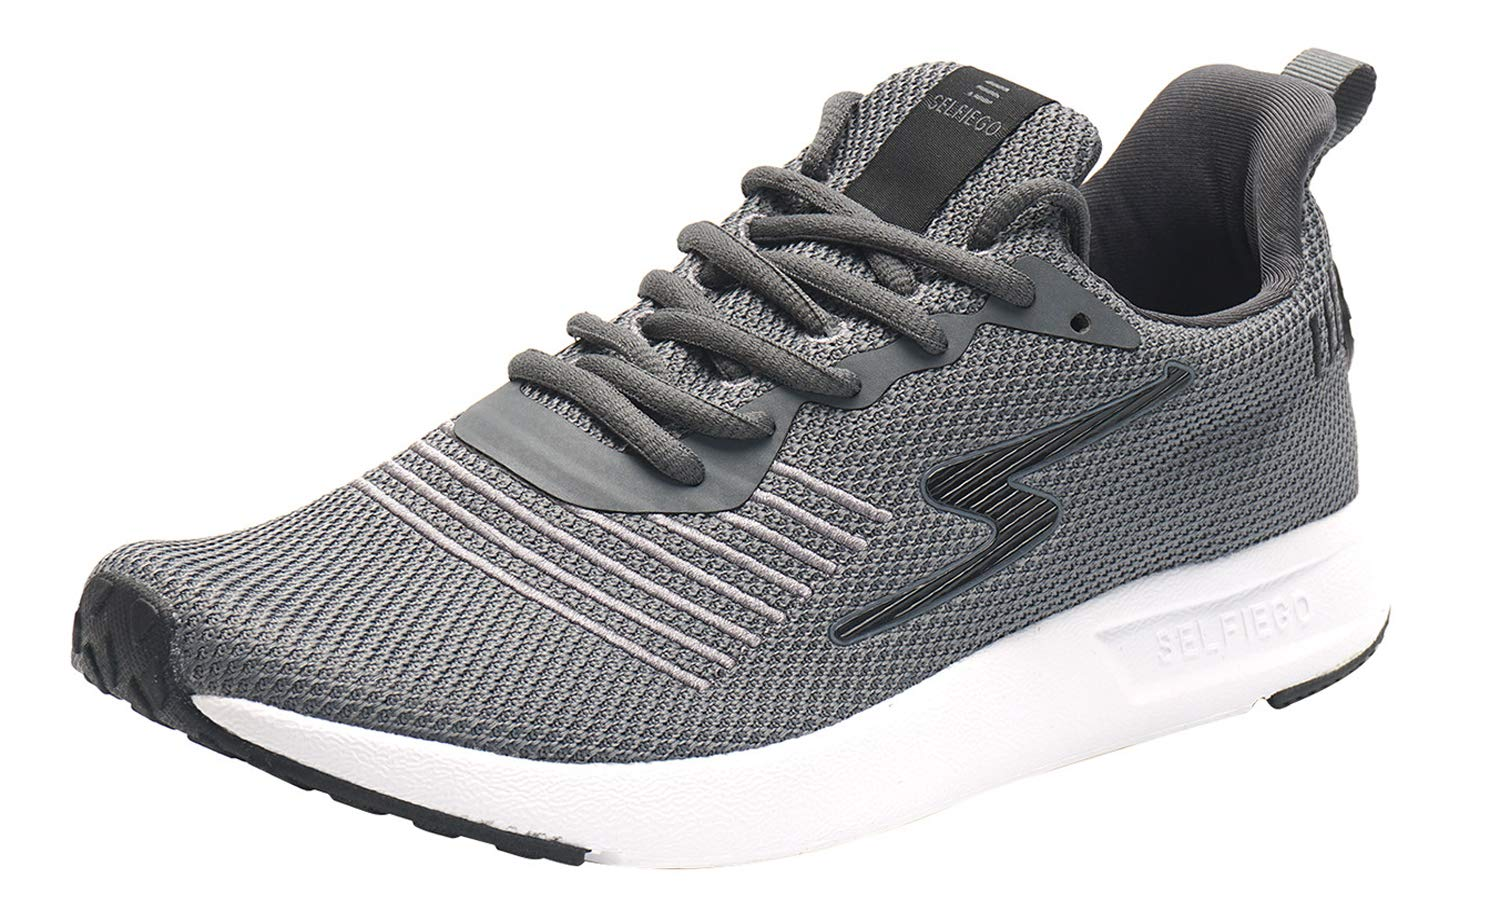 71o8JZvRaOL - SelfieGo Mens Casual Mesh Walking Shoes - Fashion Athletic Sport Running Sneaker Comfortable Breathable Lightweight